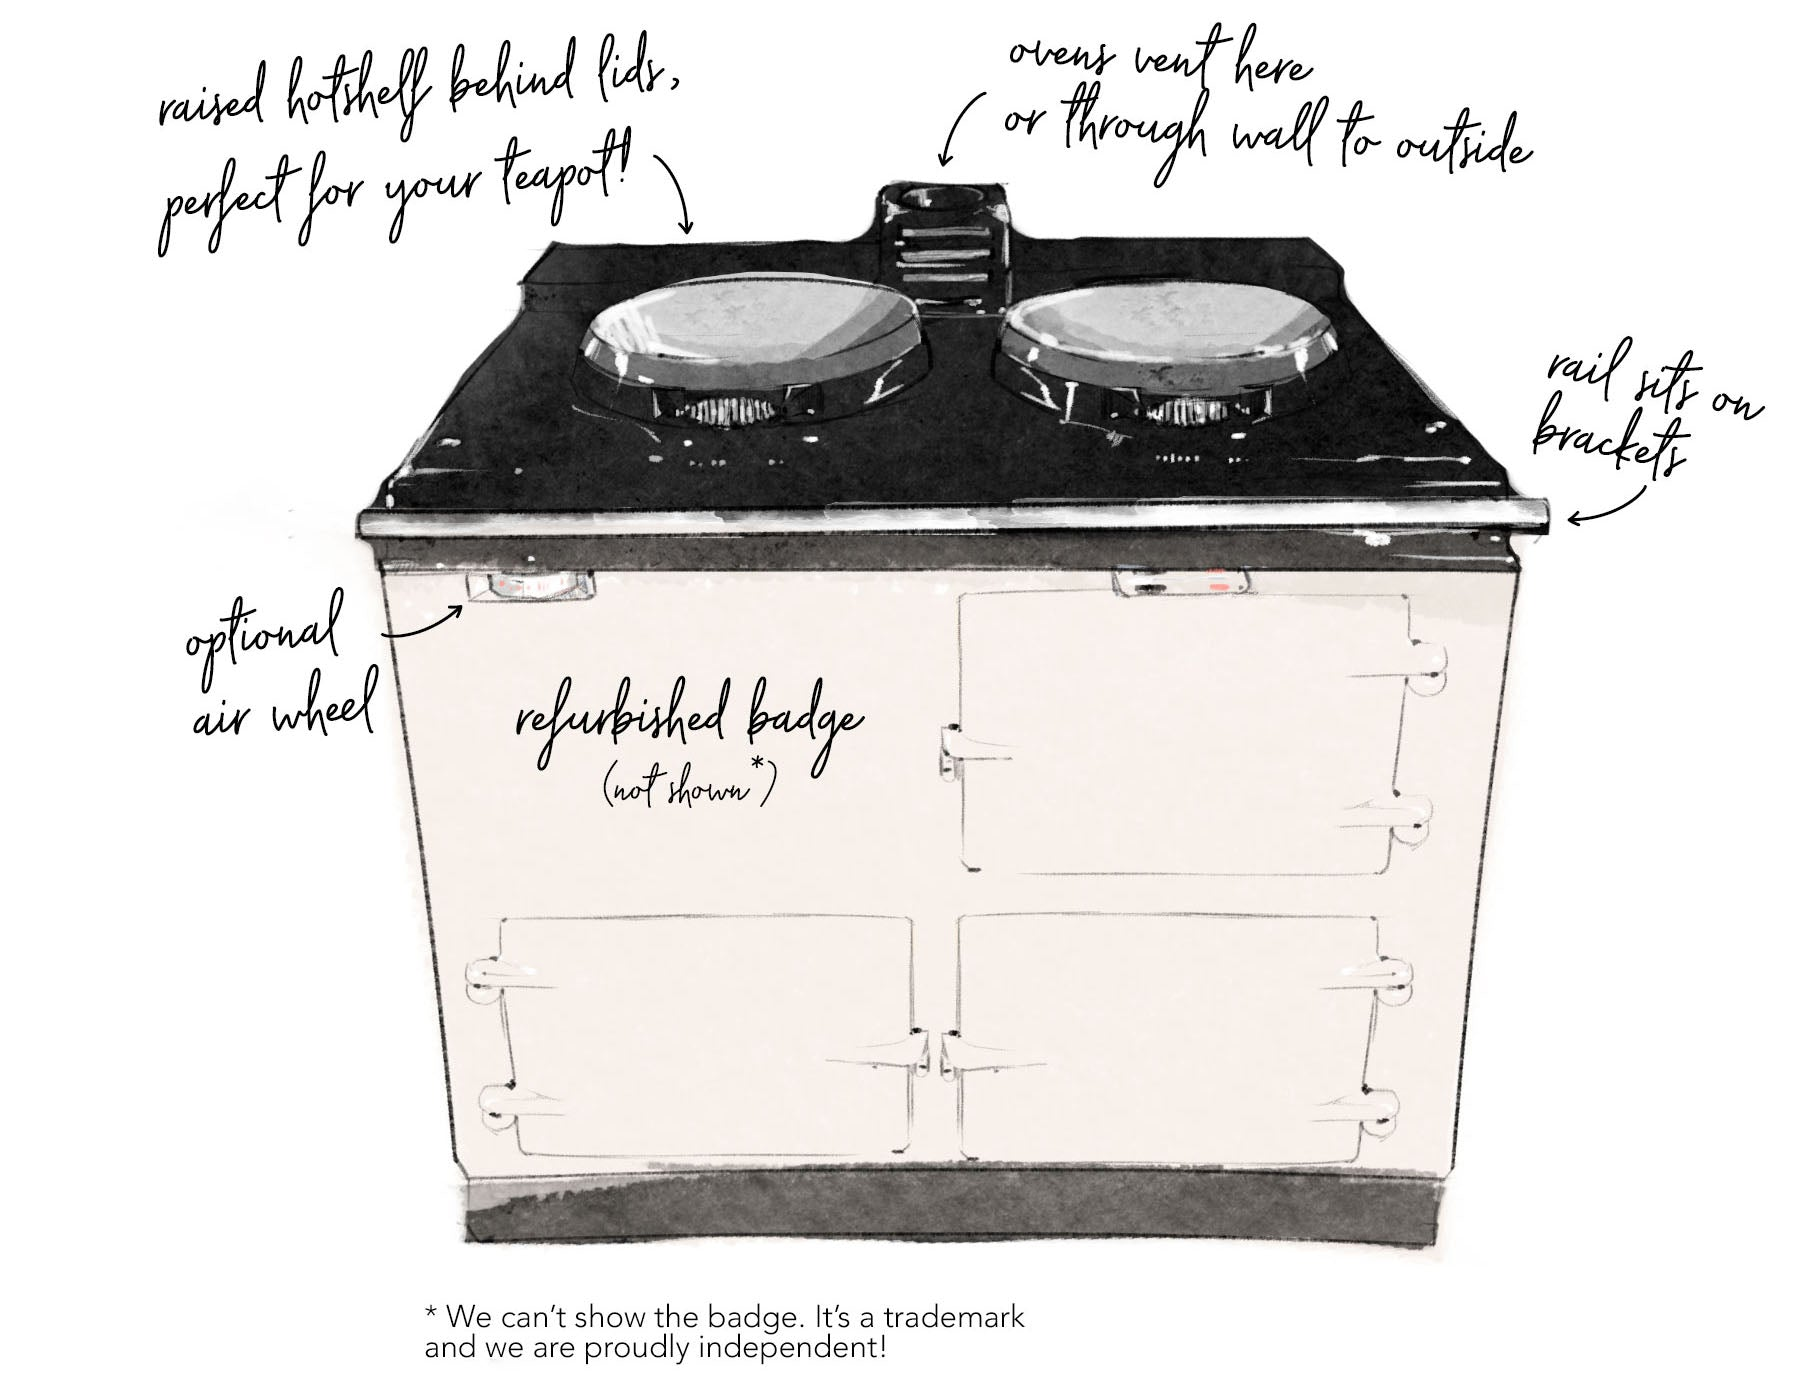 Early model 'Deluxe' reconditioned Aga range cooker